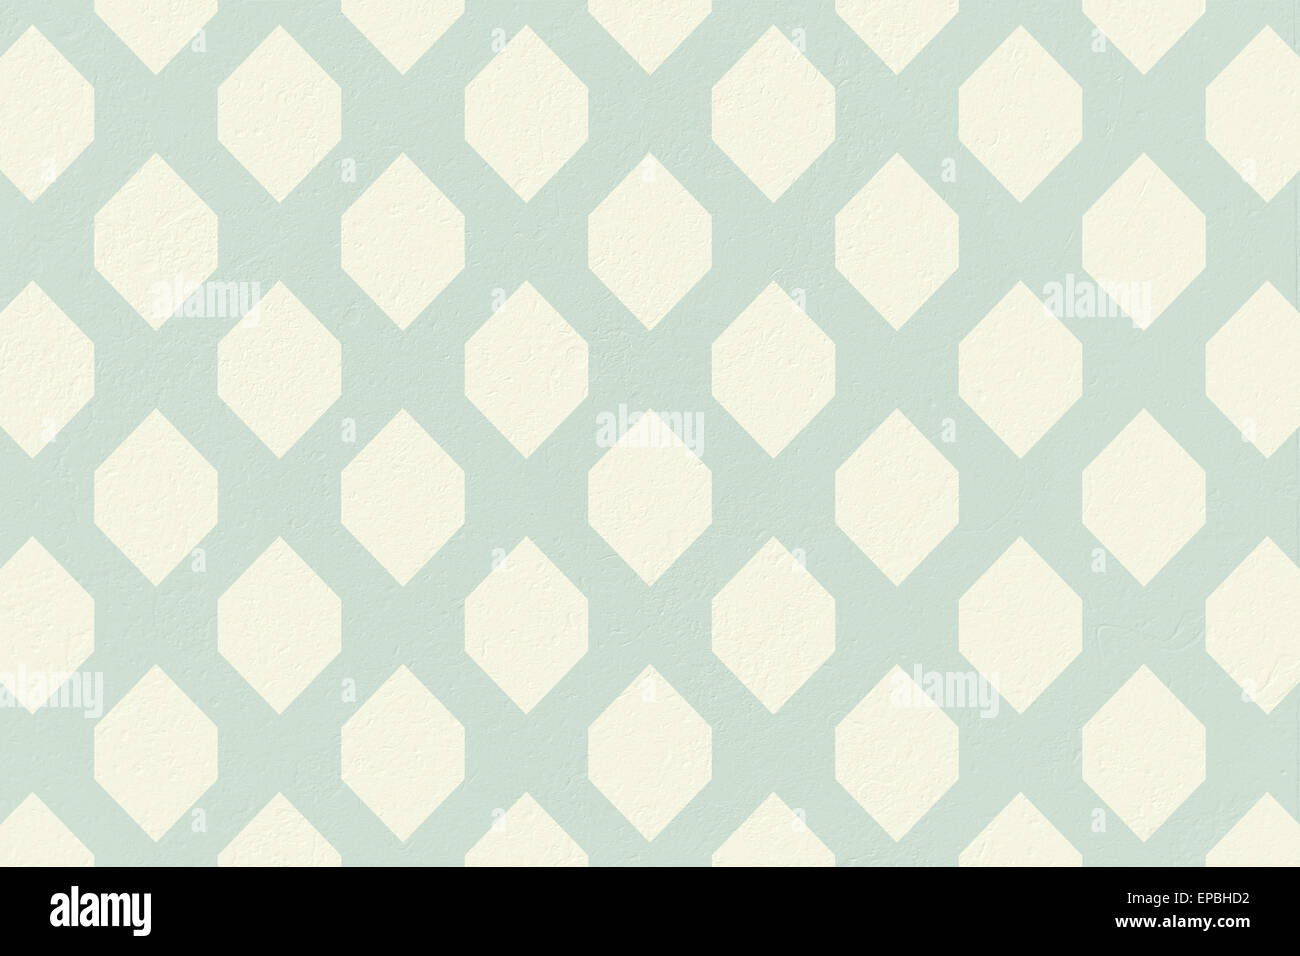 blue and cream patterned wallpaper stock photo 82619070 alamy